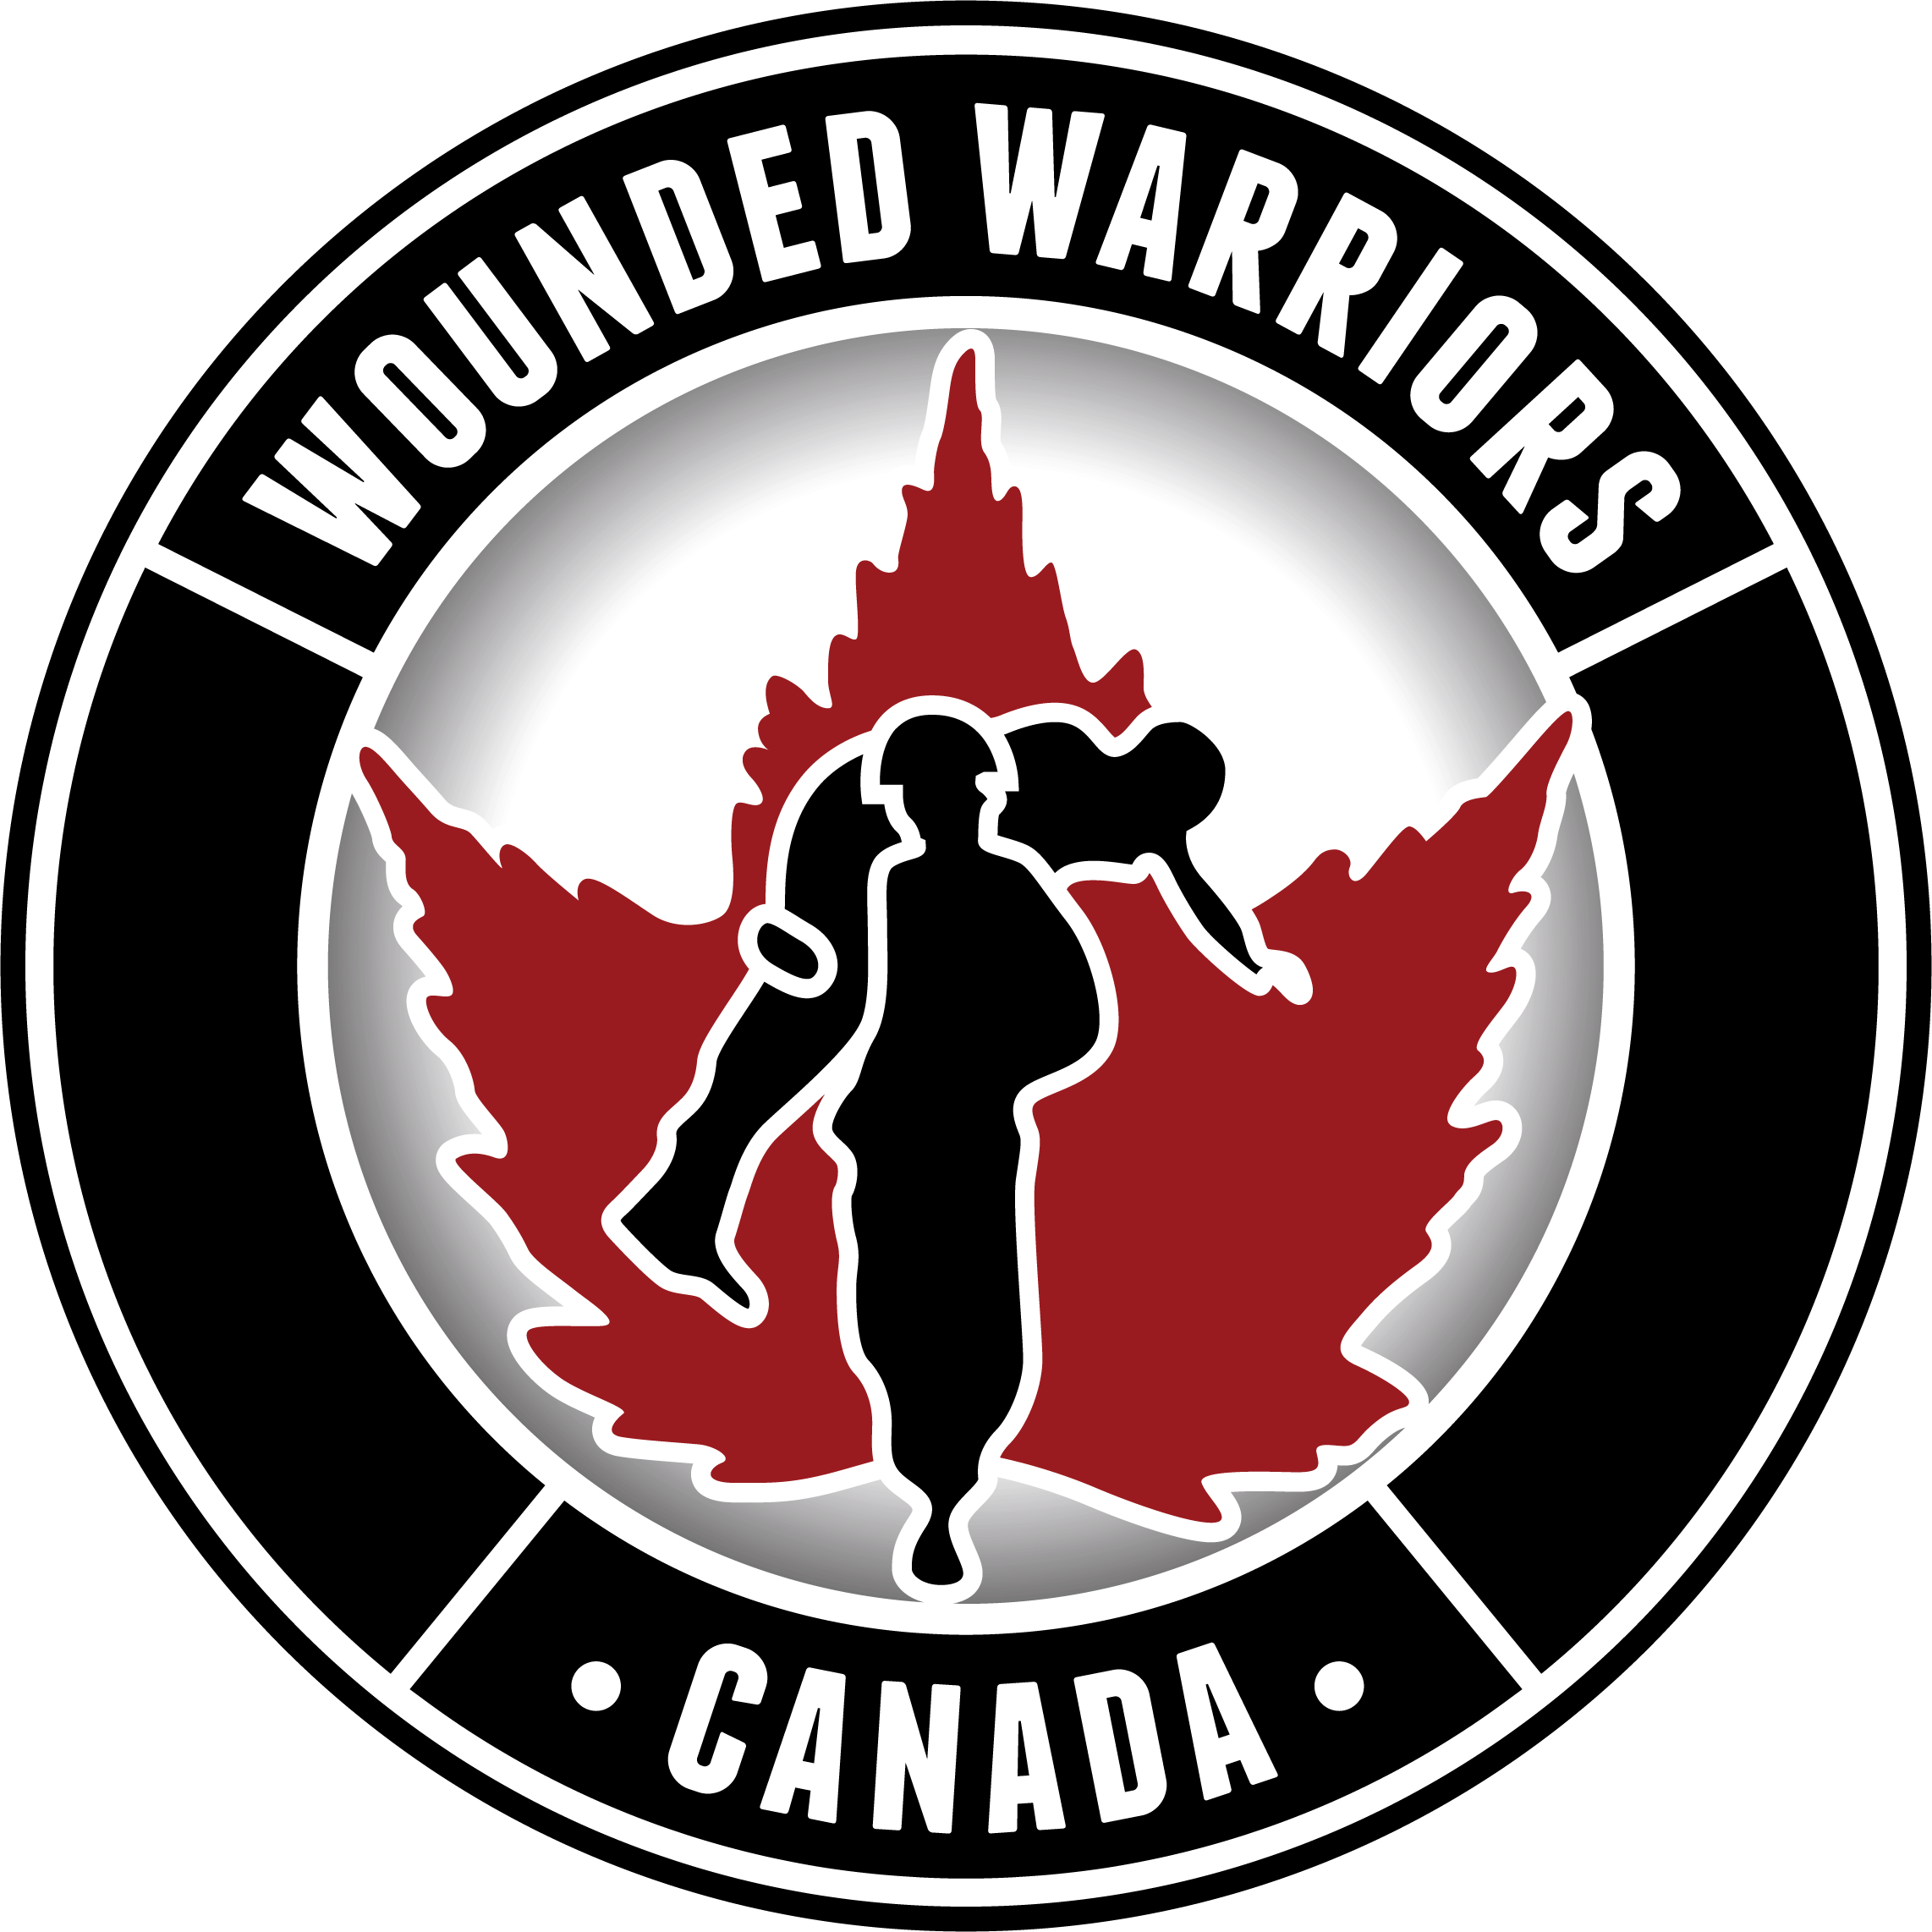 wounded-warriors-canada-logo.png